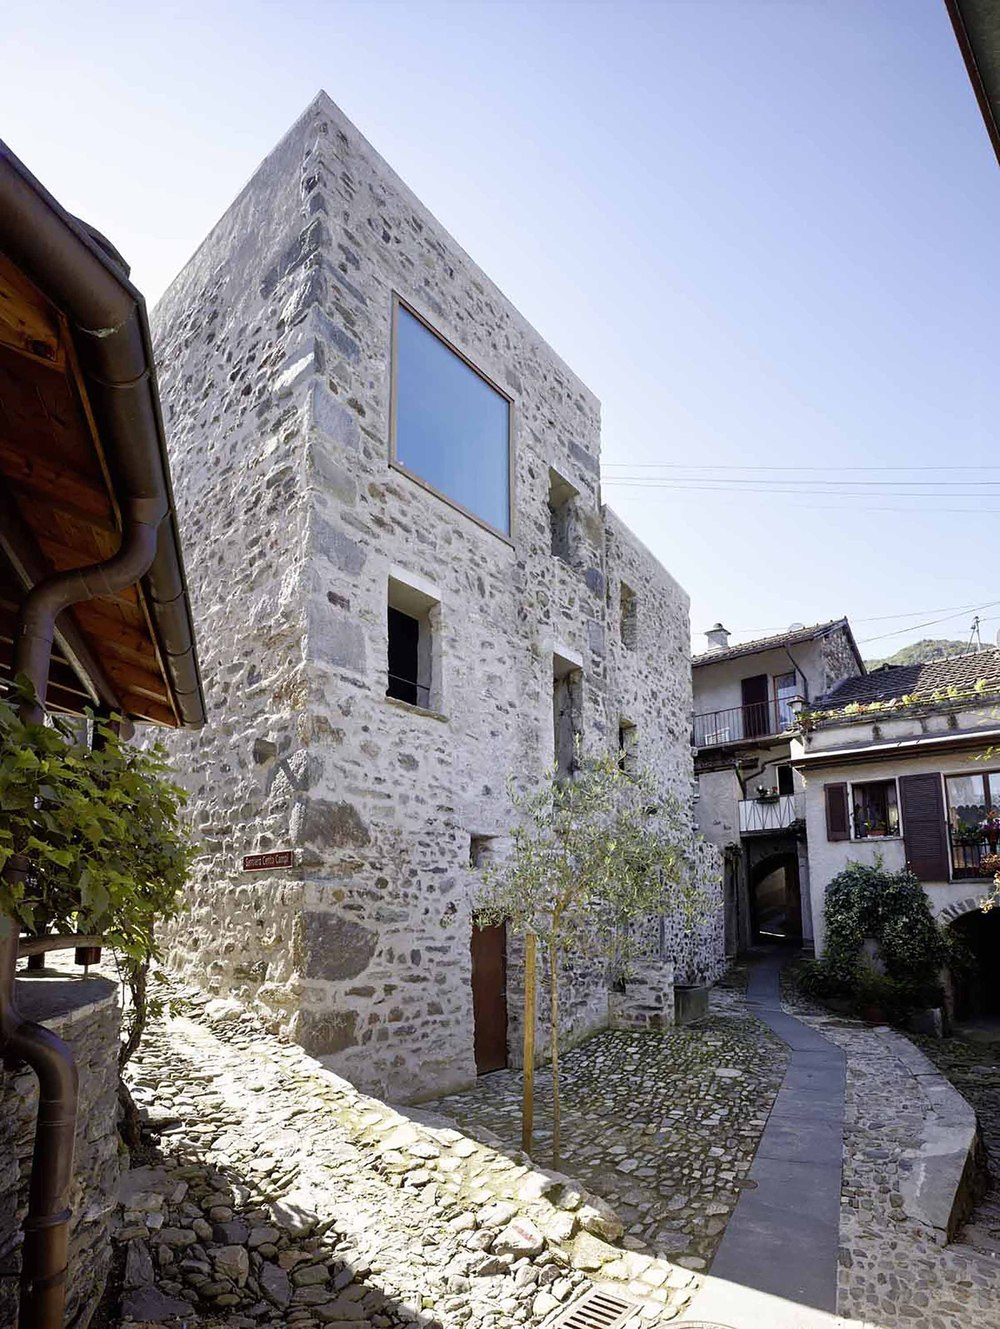 543dd585c07a80762d00024a_stone-house-transformation-in-scaiano-wespi-de-meuron-romeo-architects_1430_cf029706.jpg